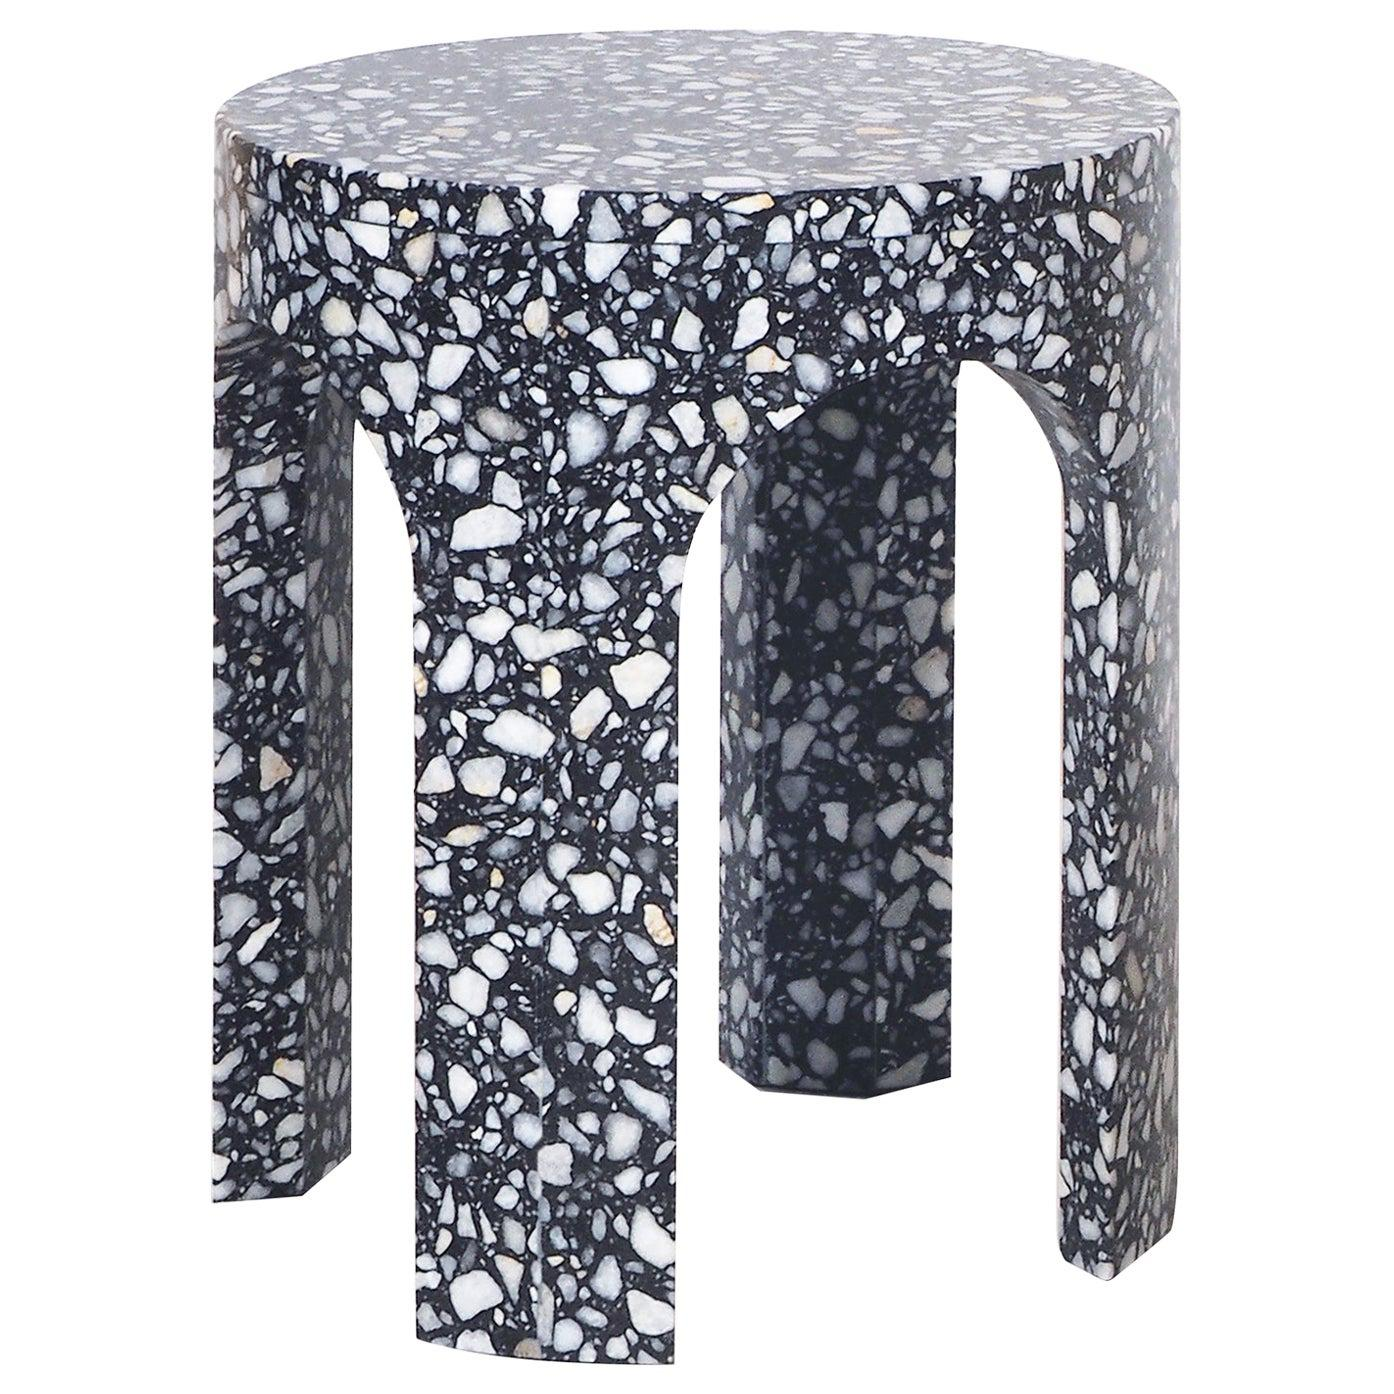 Loggia Small Side Table or Black Terrazzo Marble by Portego